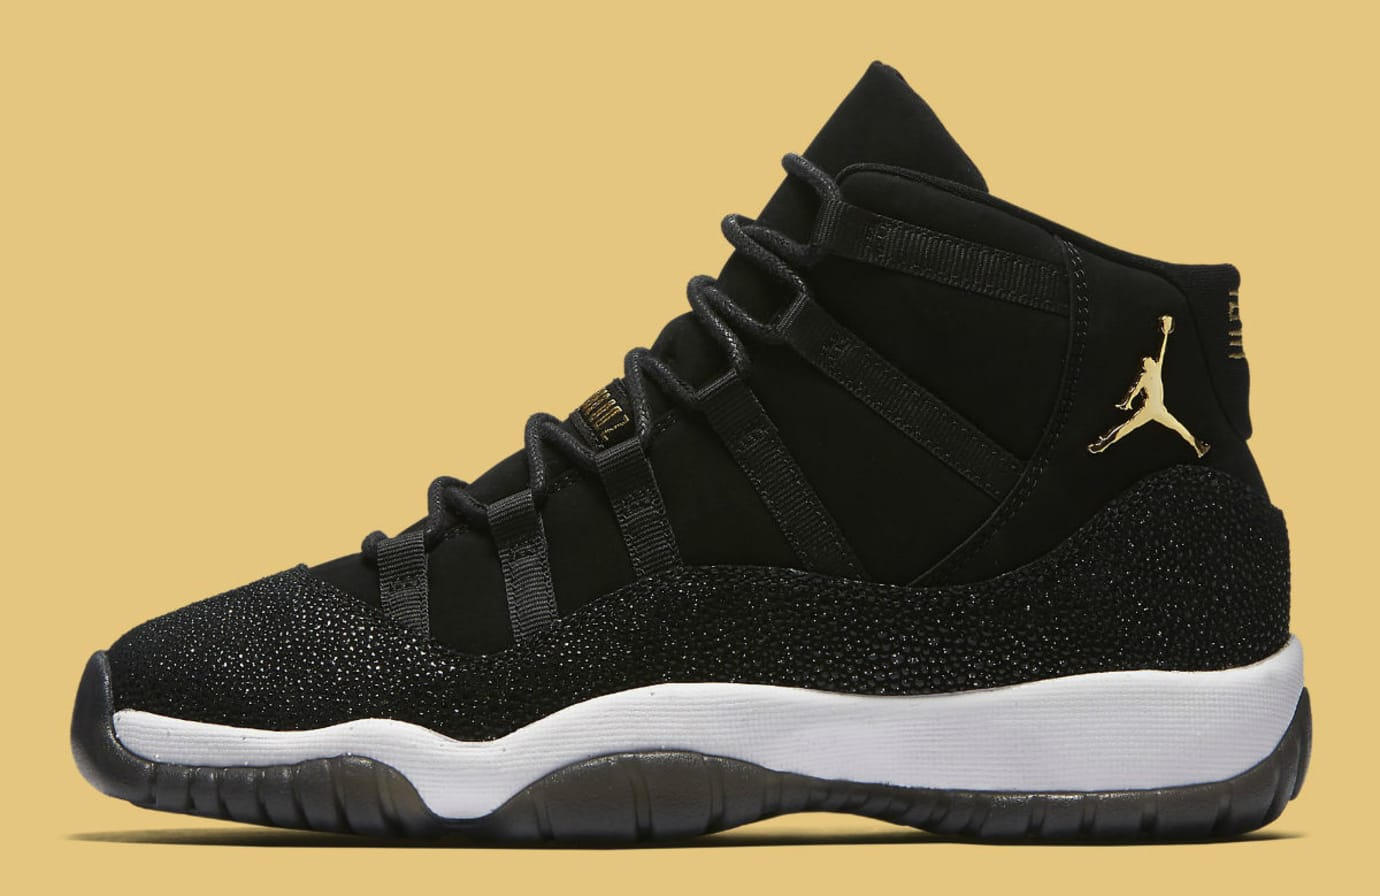 Air Jordan 11 XI Heiress Black Release Date 852625-030 Profile